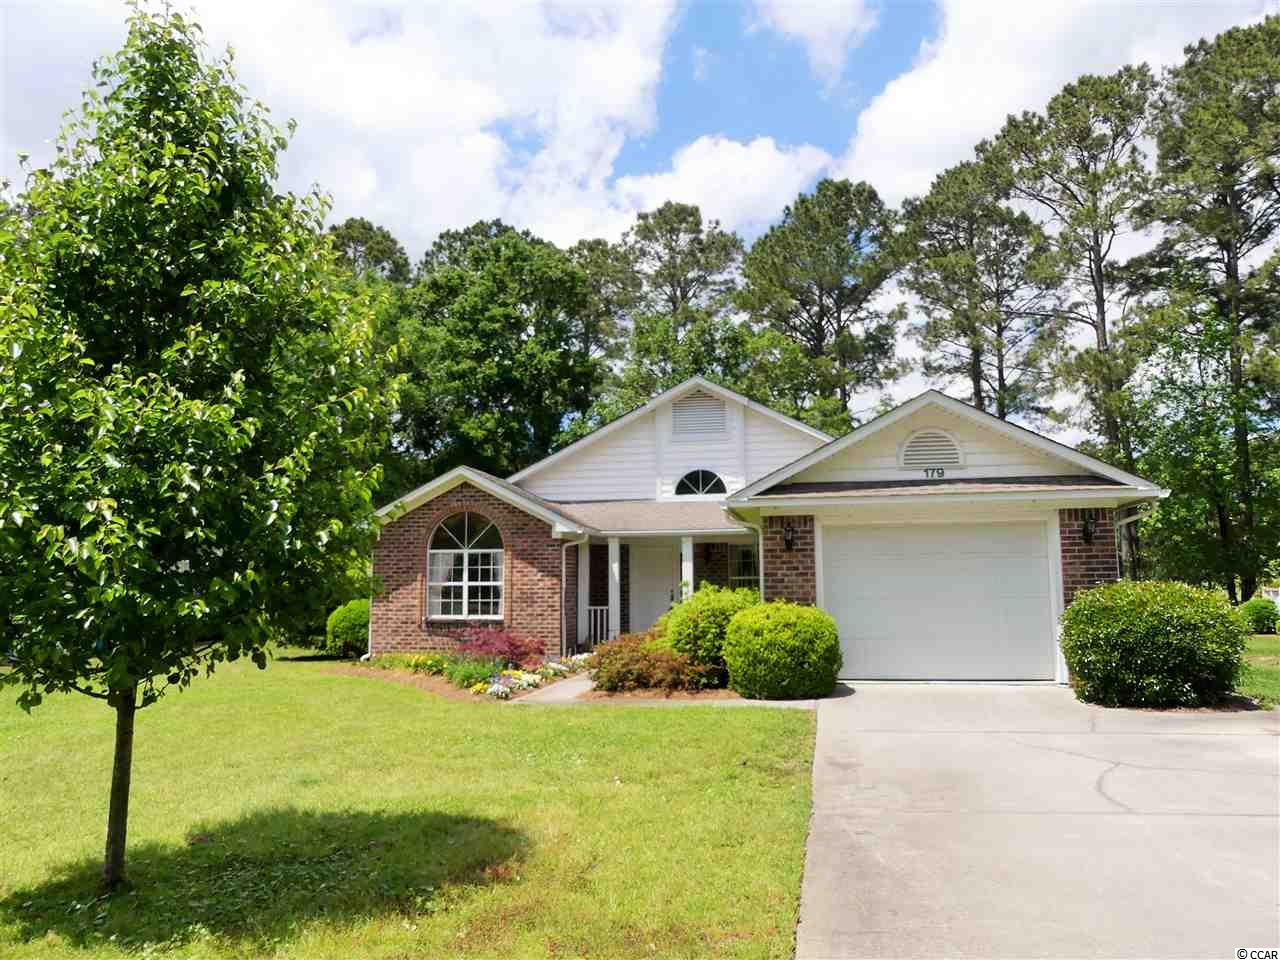 Immaculate home in the sought after River Club community of Pawleys Island, SC ! The all brick house at 179 Mackinley Circle features an open floor plan, 2 spacious bedrooms, a NEW ROOF, an incredibly large sun-room area, an over-sized 1 car garage, a clean white kitchen with granite counters, and a rear porch area overlooking the golf course. The River Club is a gated community located less than 2 miles to the ocean and houses an 18 hole golf course, tennis courts, pool, a full club house, and private beach access through Litchfield by the Sea.